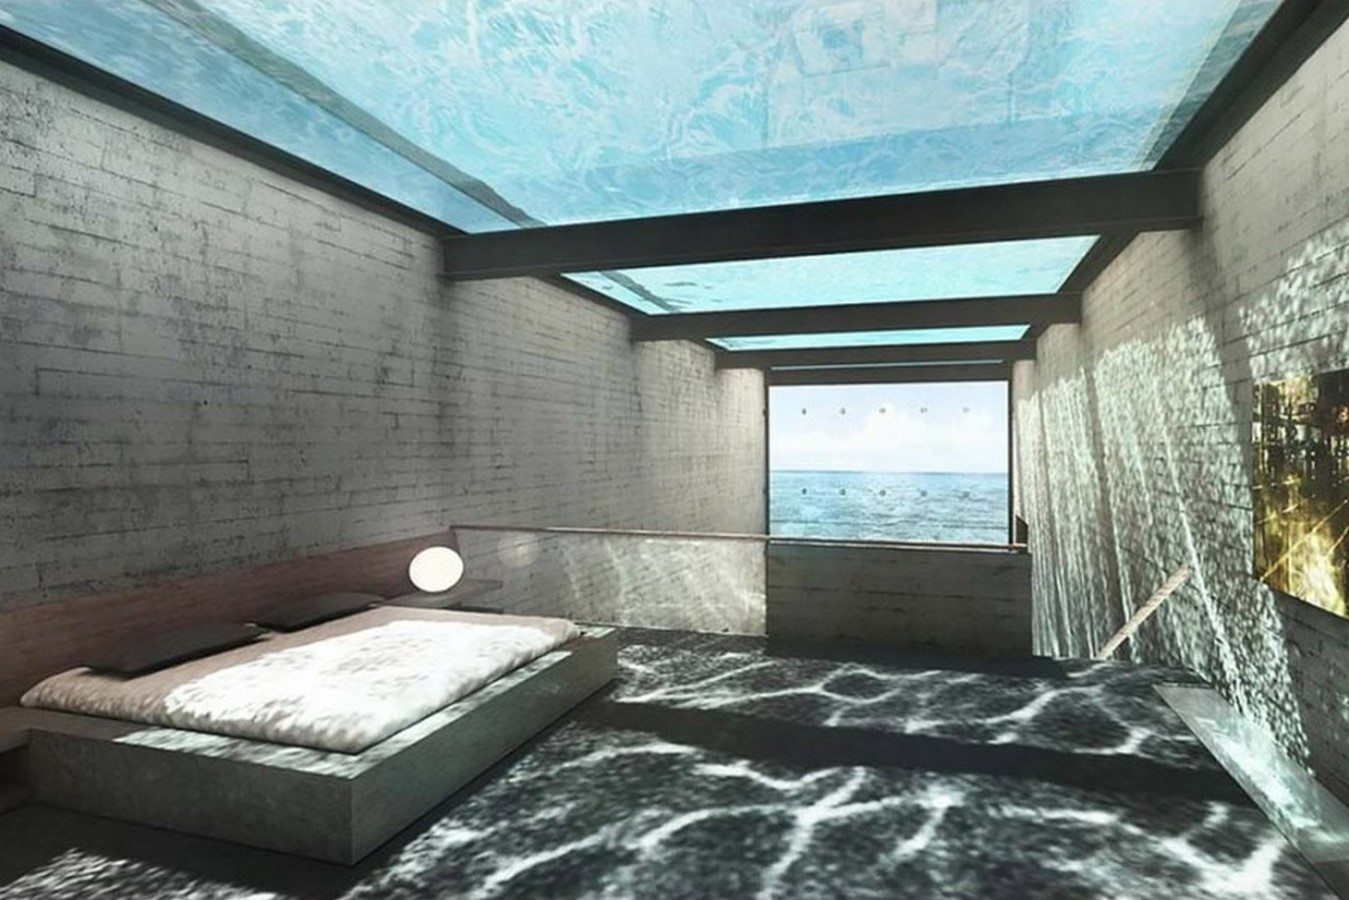 20 Futuristic homes ideas to invest in - Sheet10